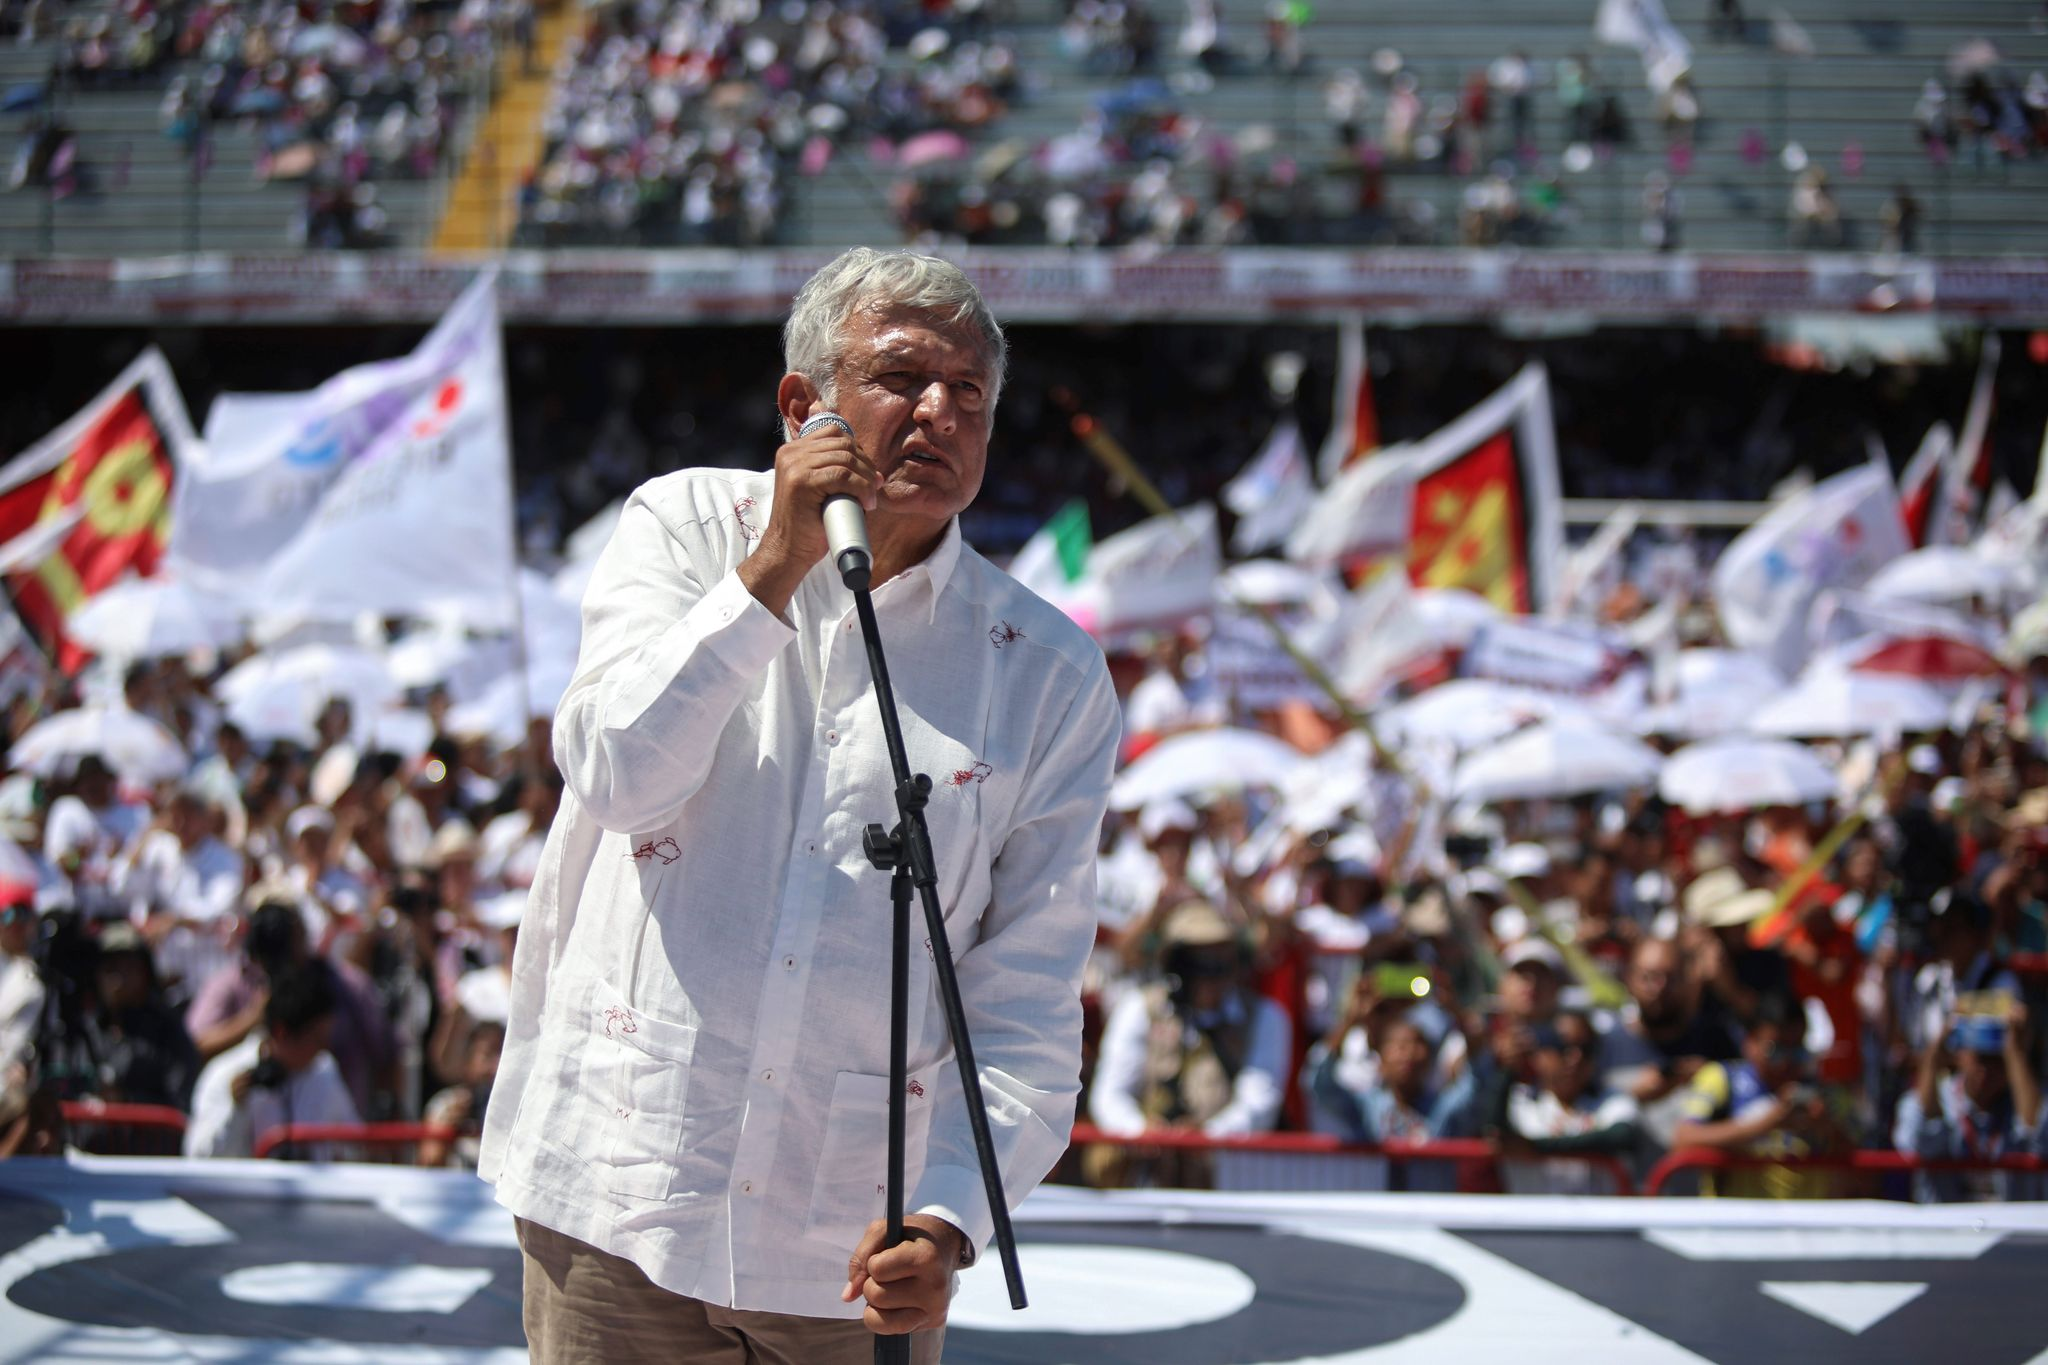 Andres Manuel Lopez Obrador, in lead for Mexico president, has many guessing - Washington Times